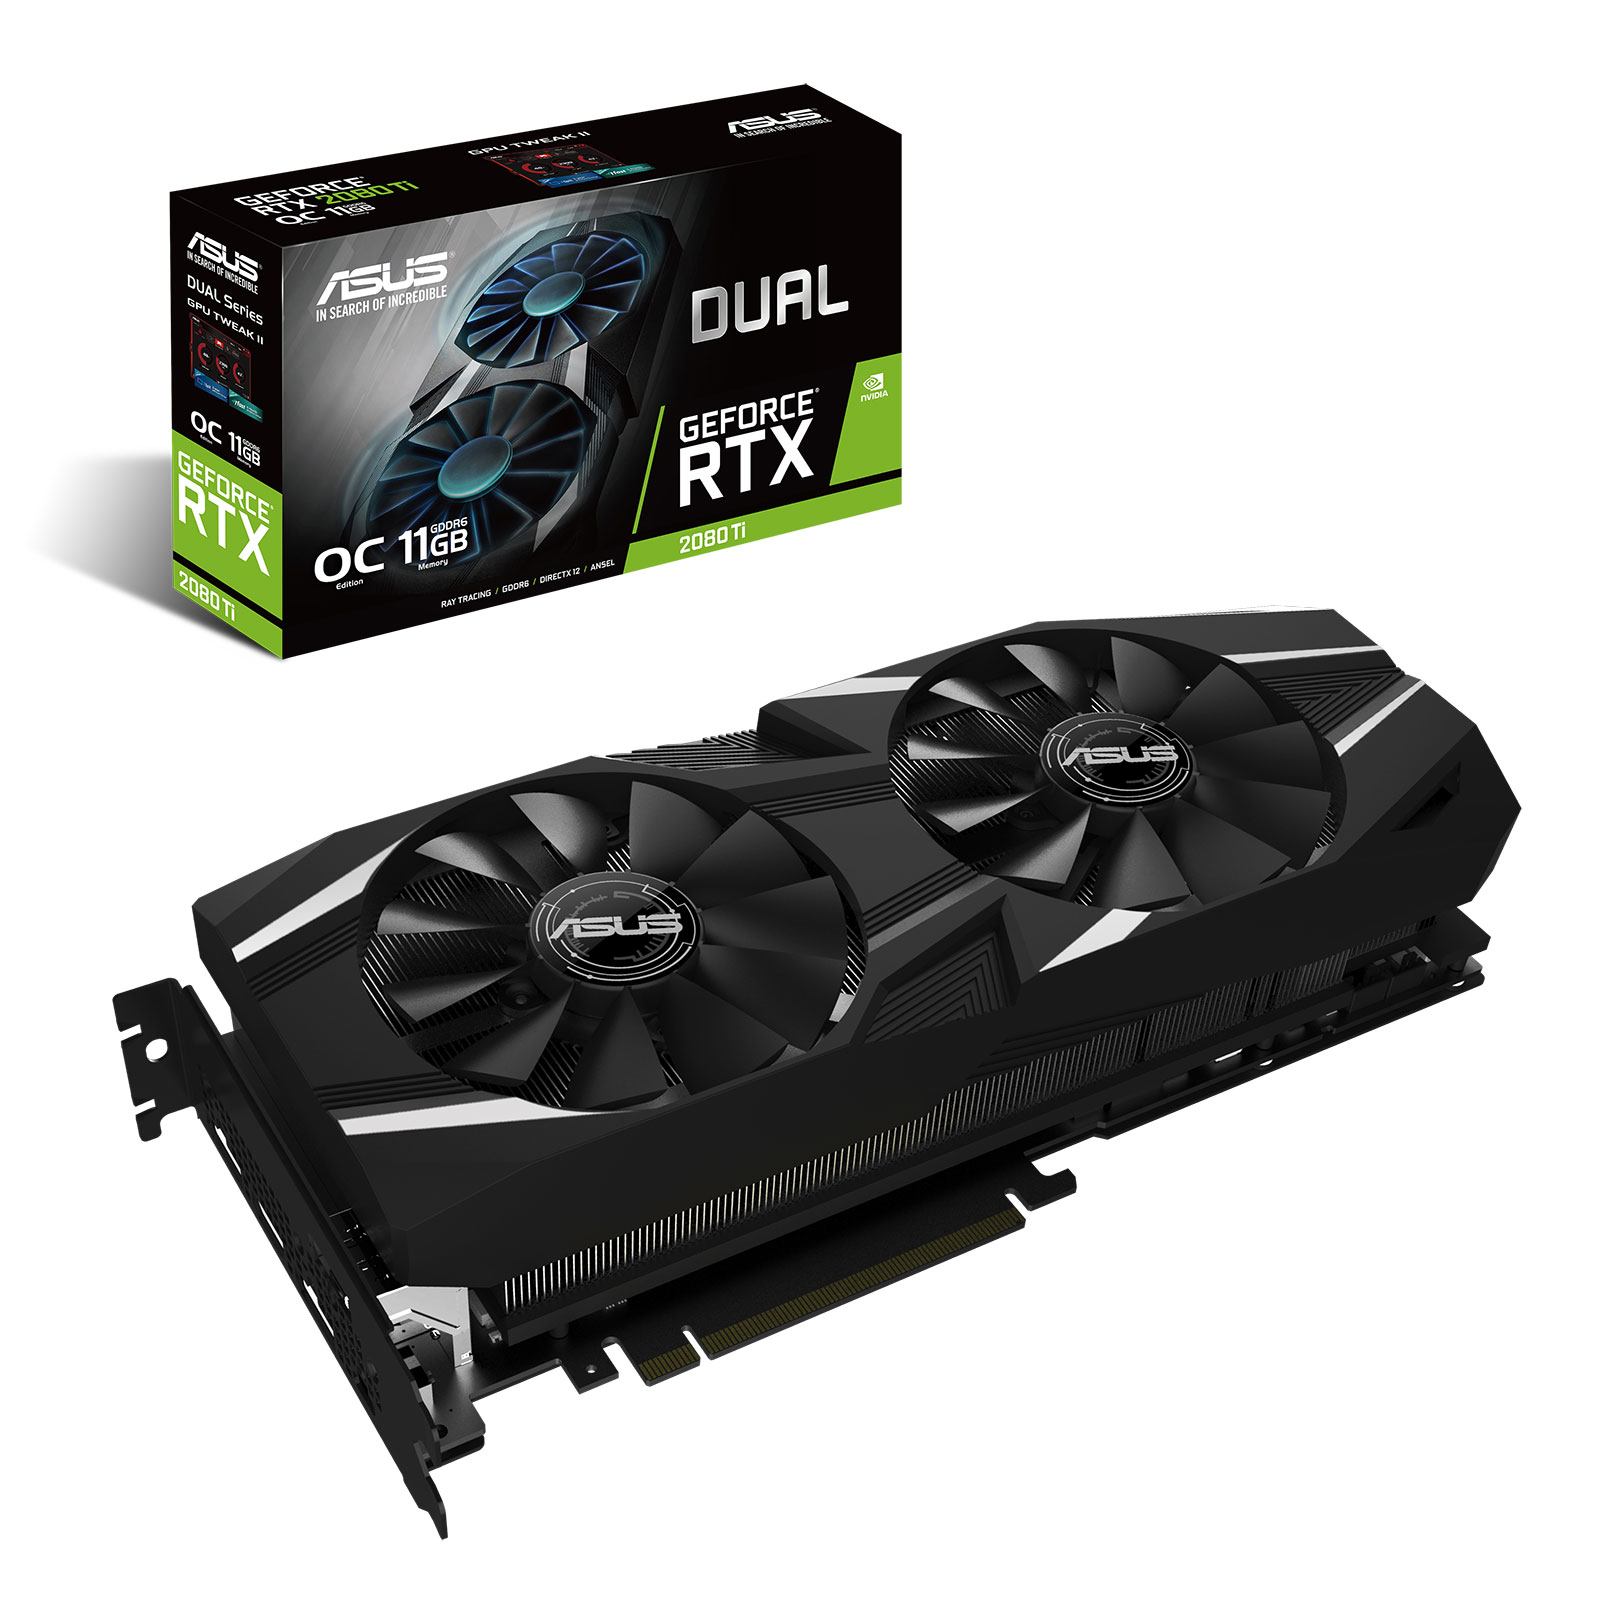 Carte graphique ASUS GeForce RTX 2080 Ti DUAL-RTX2080TI-O11G 11 Go GDDR6 - HDMI/Tri DisplayPort/USB Type-C - PCI Express (NVIDIA GeForce RTX 2080 Ti)